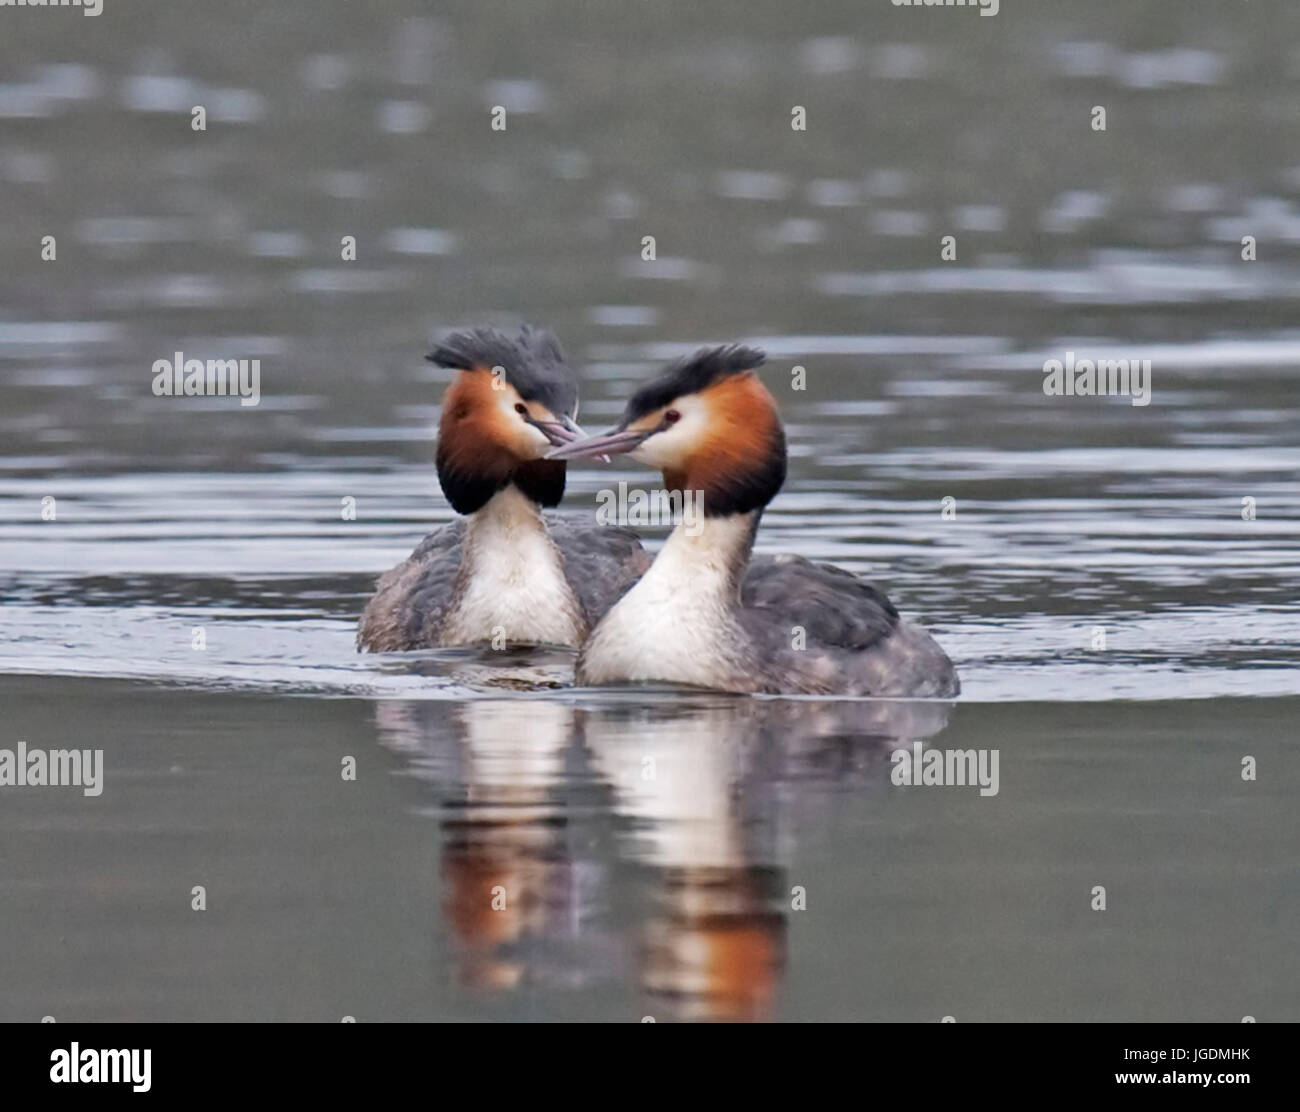 Great Crested Grebes, Podiceps cristatus - Stock Image